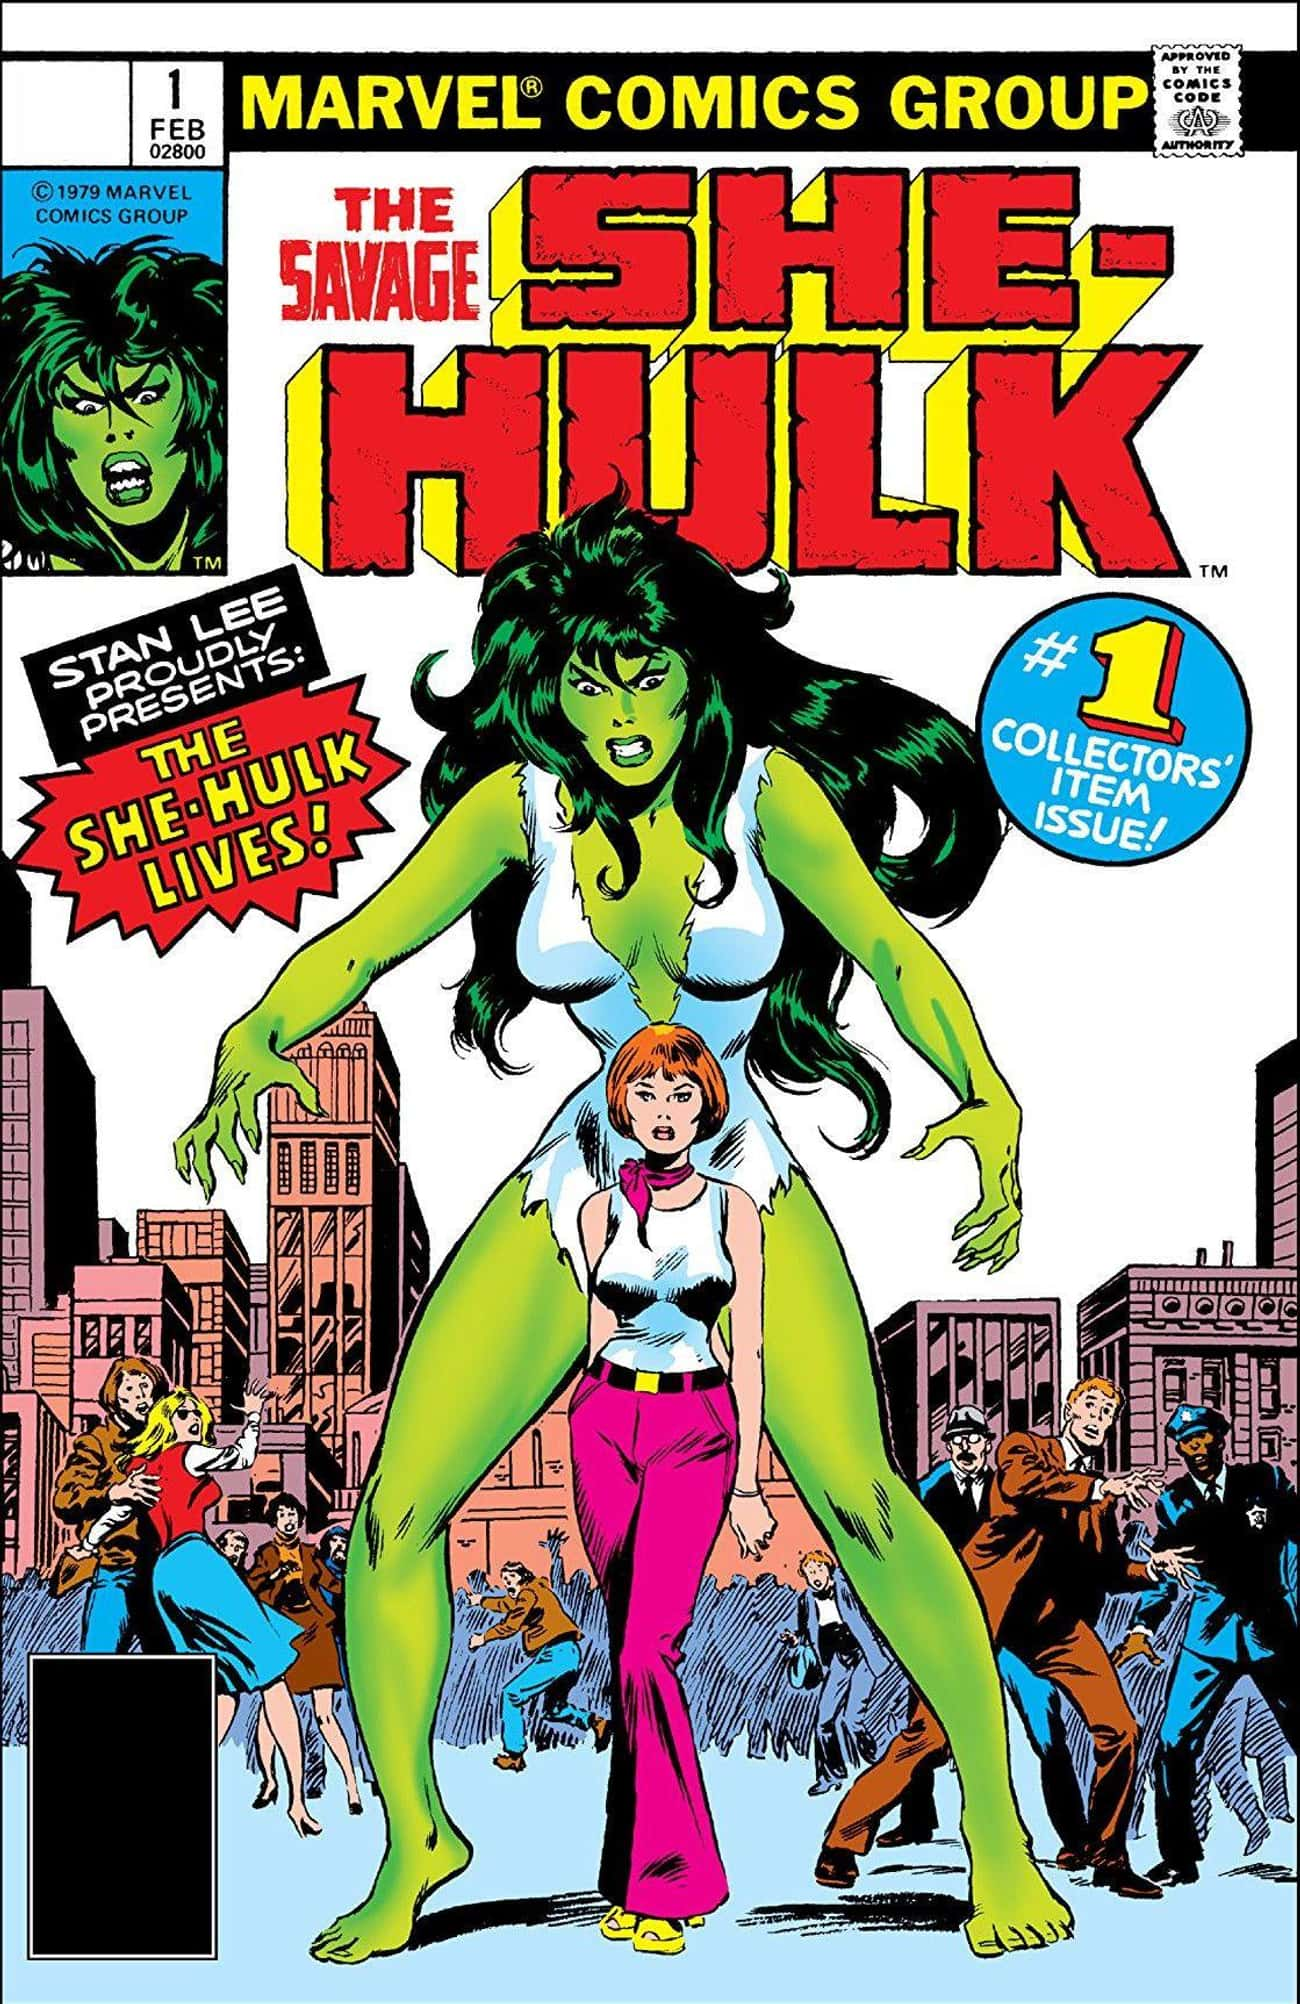 She-Hulk Is One Of The Last Ch is listed (or ranked) 1 on the list She-Hulk Is A Super-Powered Lawyer Who Can Go Toe-To-Toe With Her Big Green Cousin